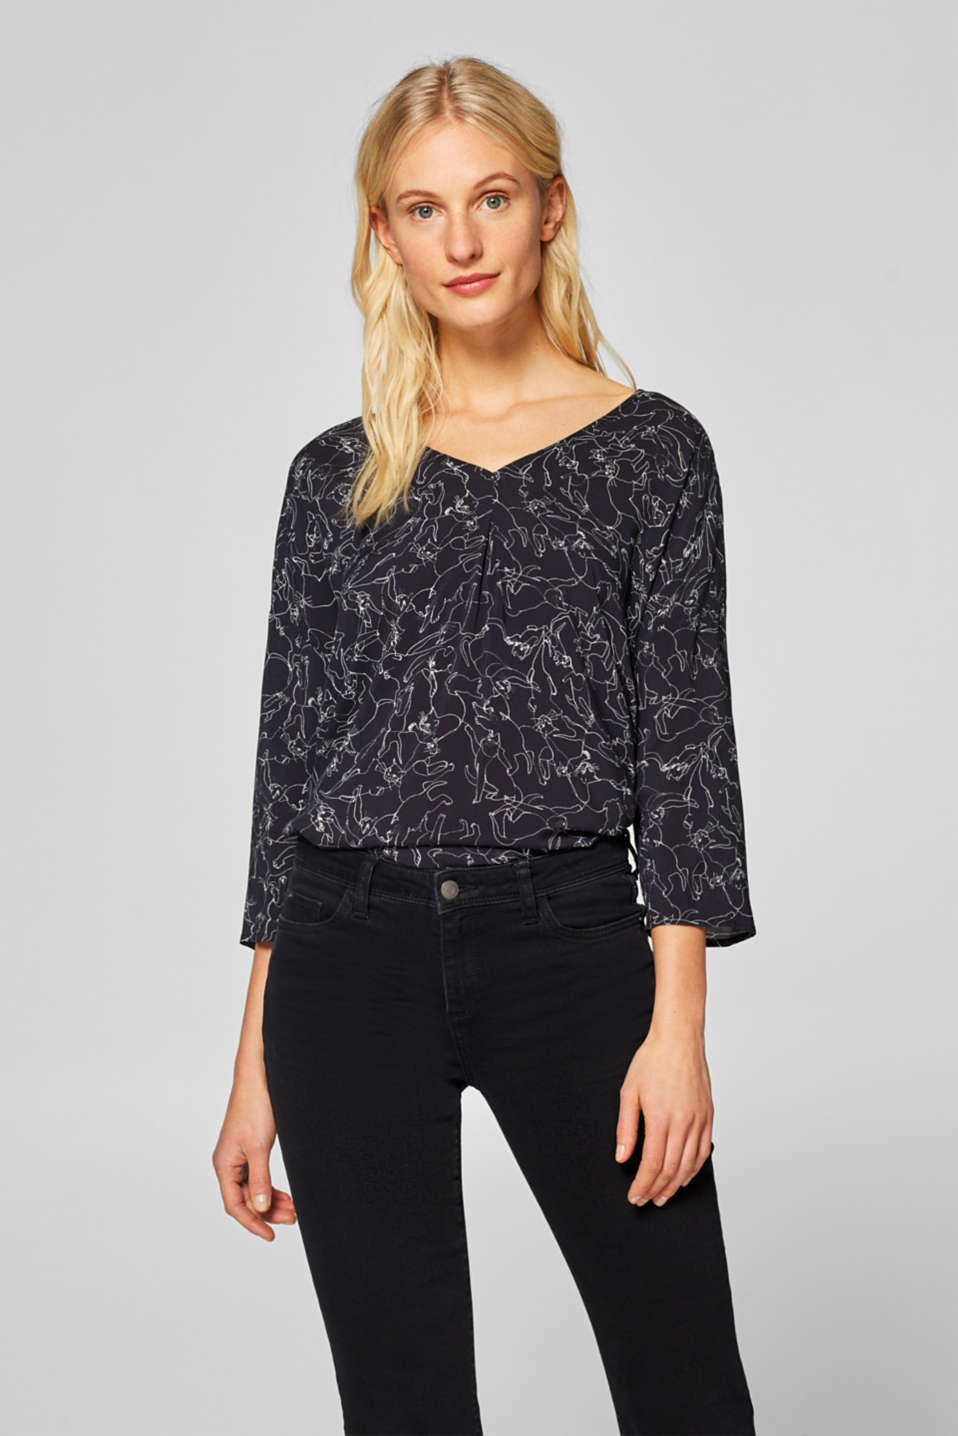 Esprit - Printed blouse with an inset front pleat